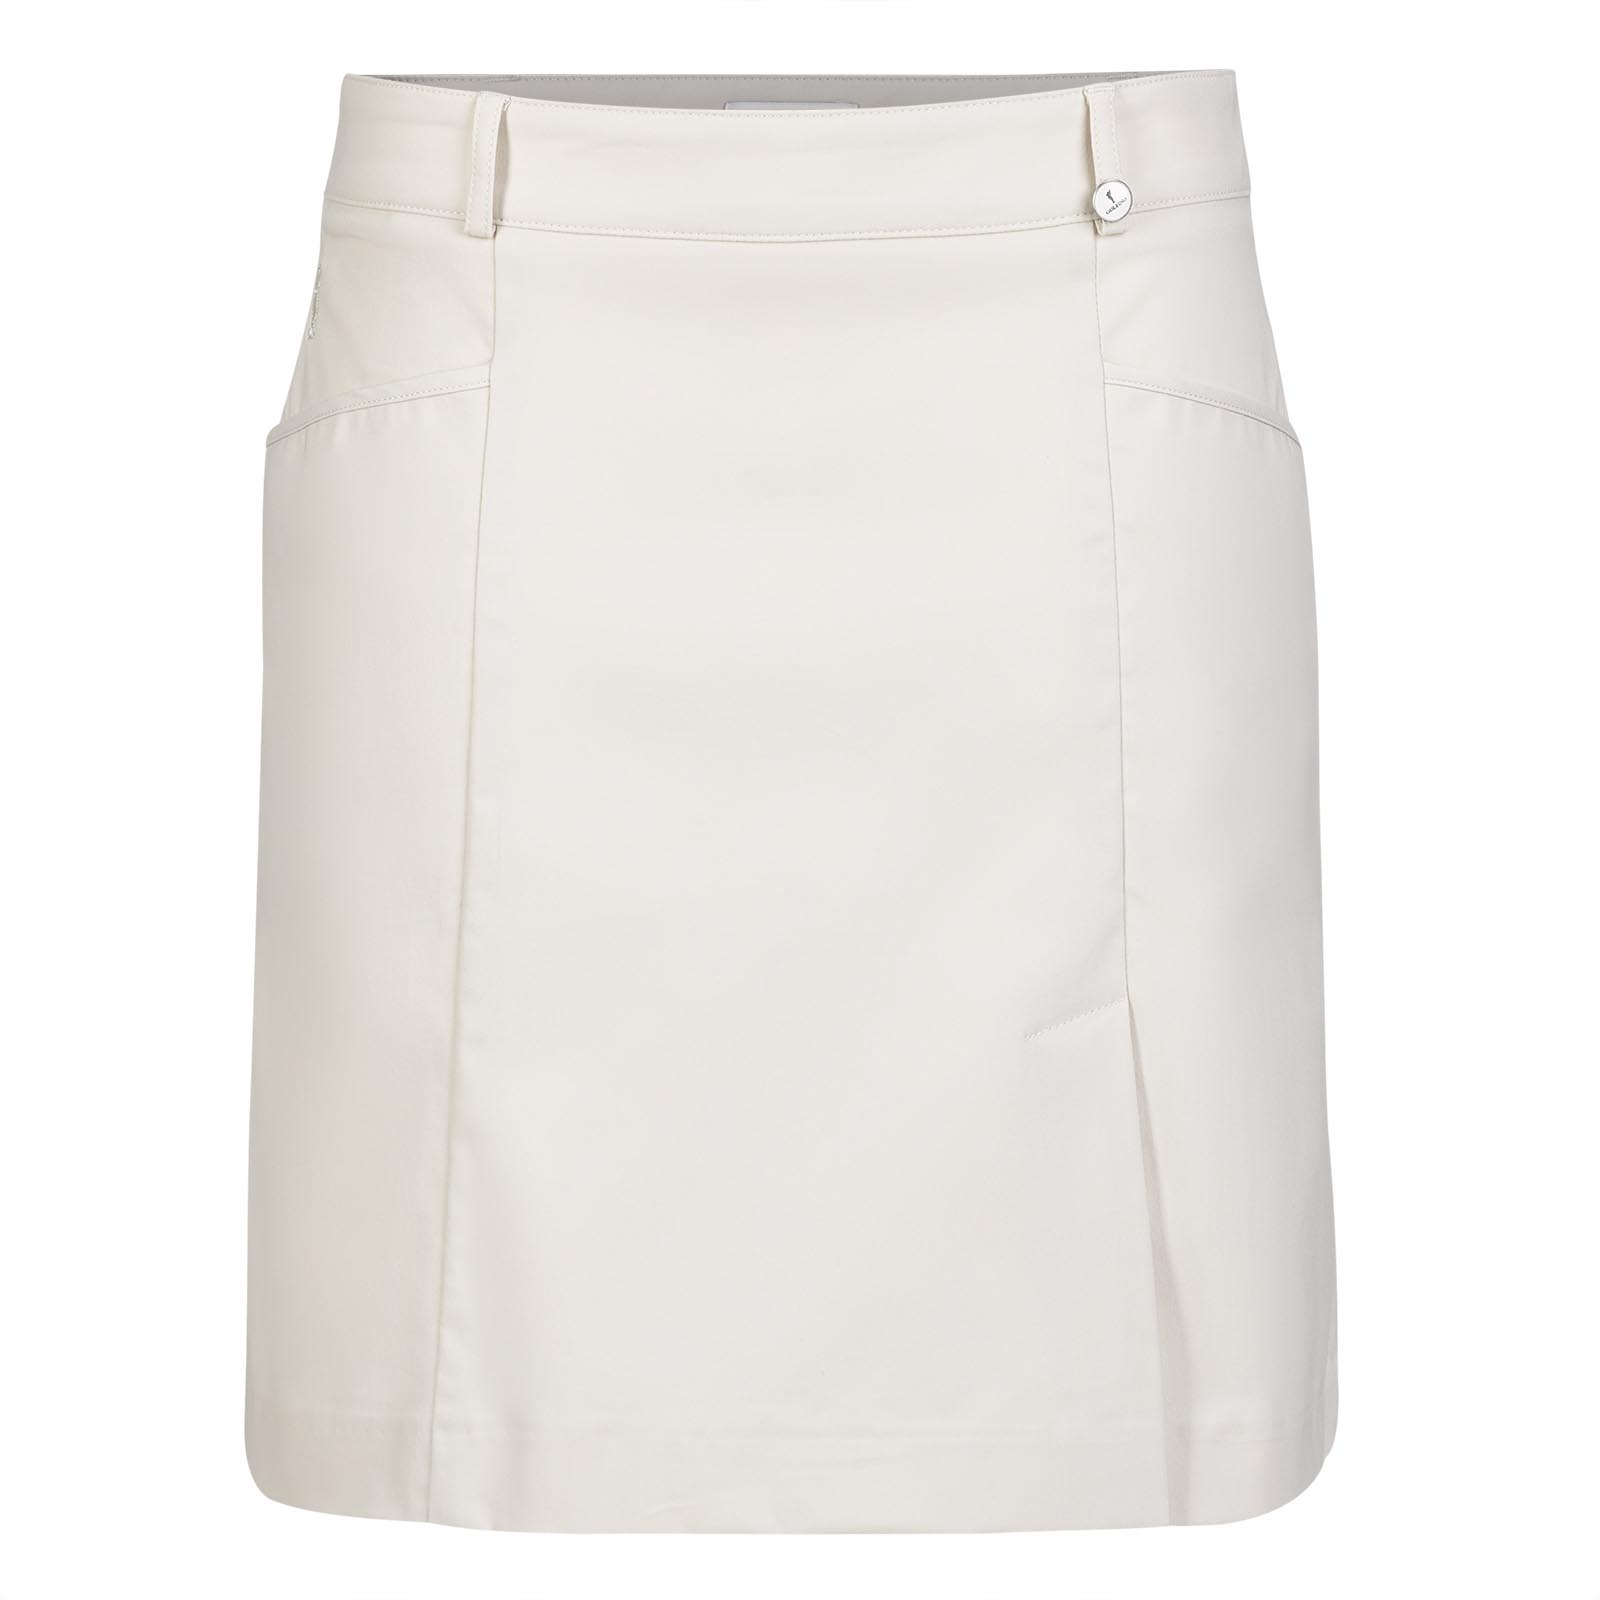 Ladies' skort made from stretch material with sun protection function